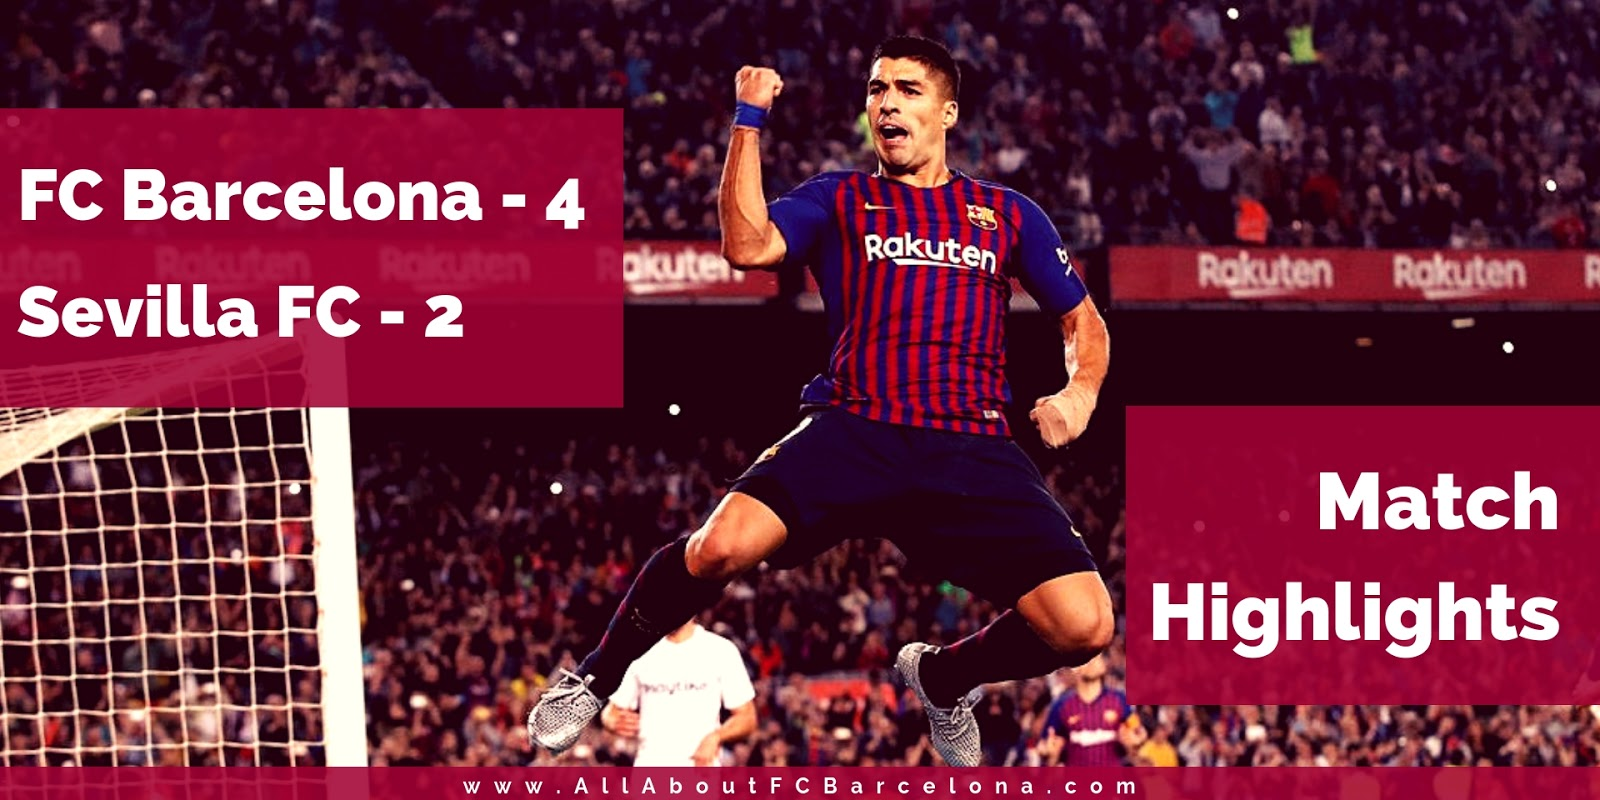 Match Highlights from FC barcelona's 4-2 victory over Sevilla at Camp Nou #Barca #BarcaSevilla #FCBarcelona